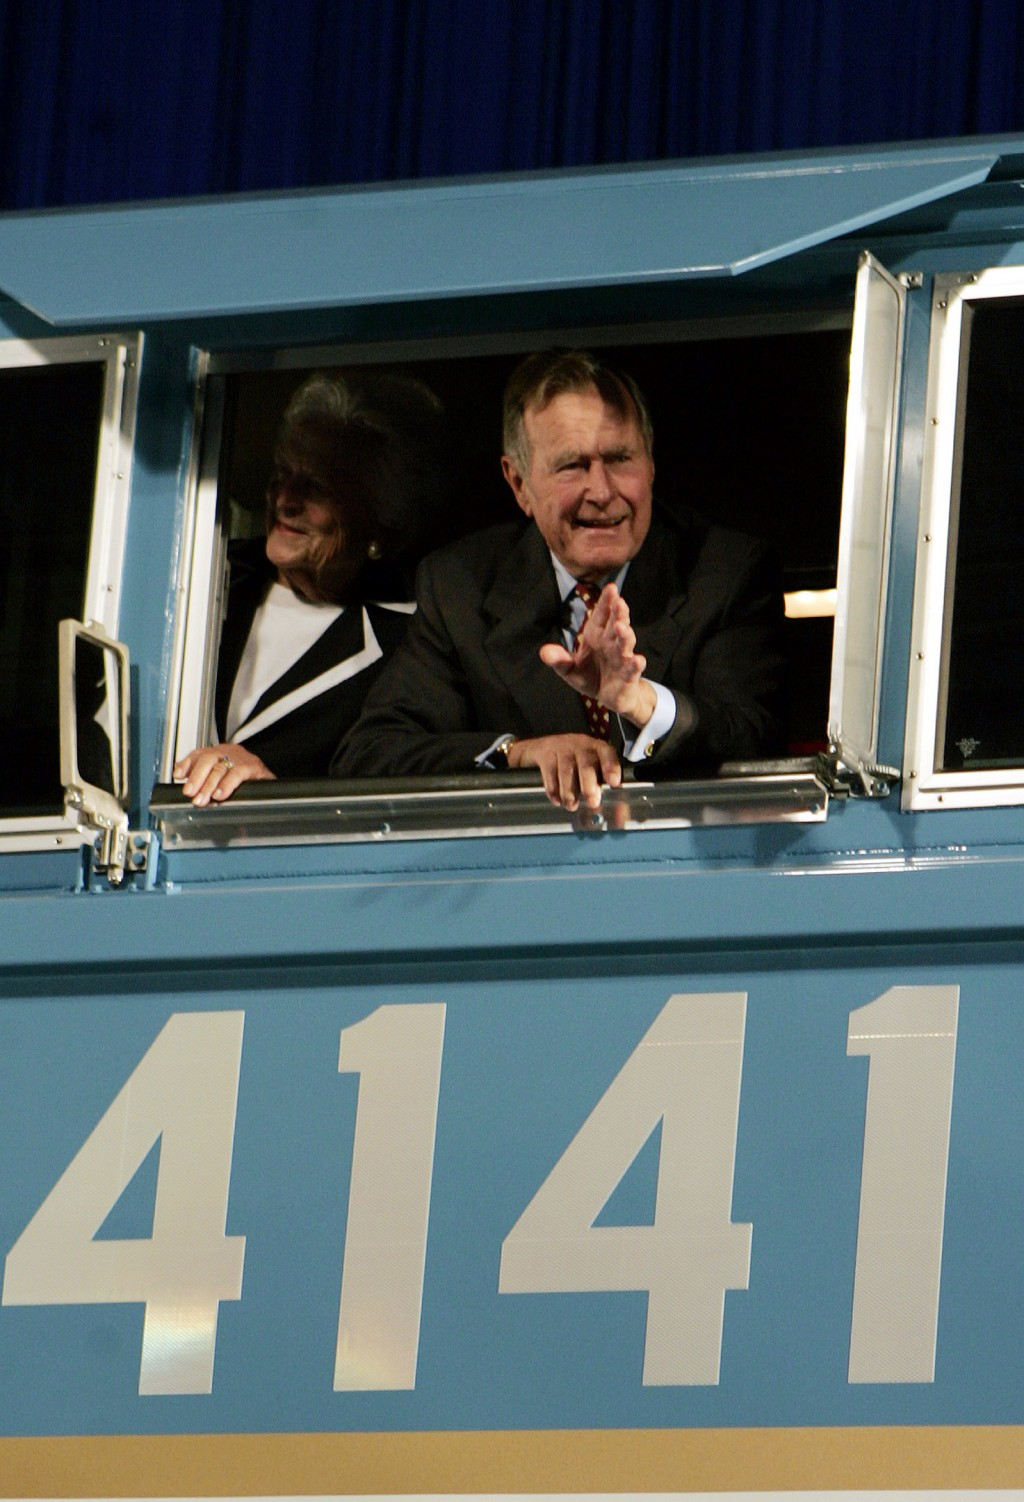 FILE - In this Oct. 18, 2005, file photo, former President George H.W. Bush and his wife Barbara wave out the window of a new locomotive numbered 4141